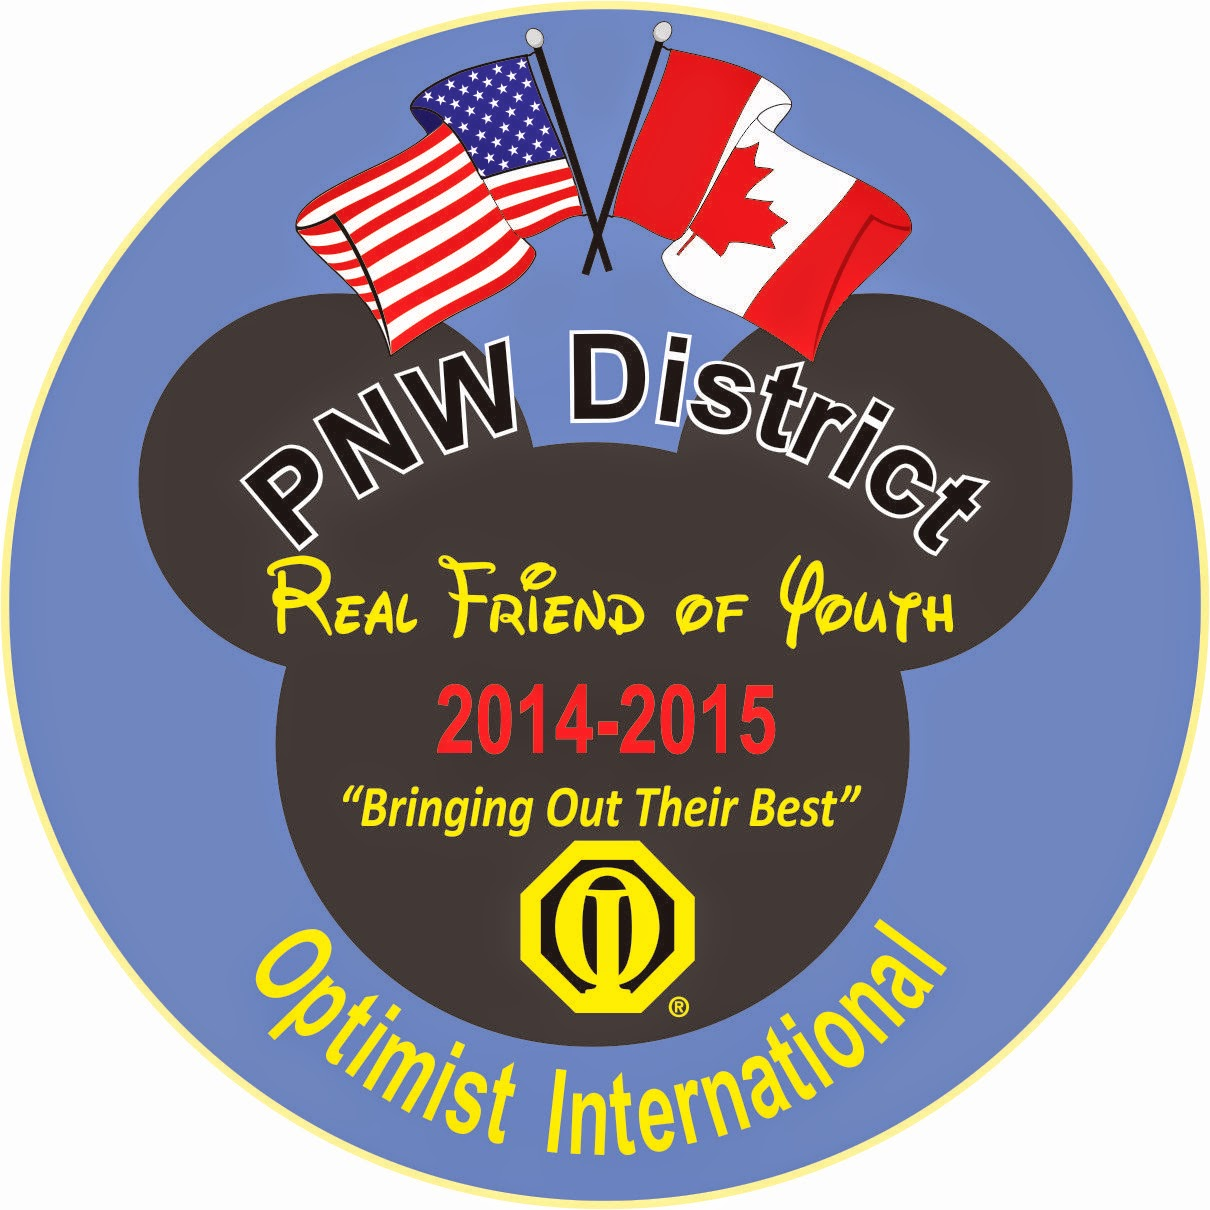 PNW District Optimist